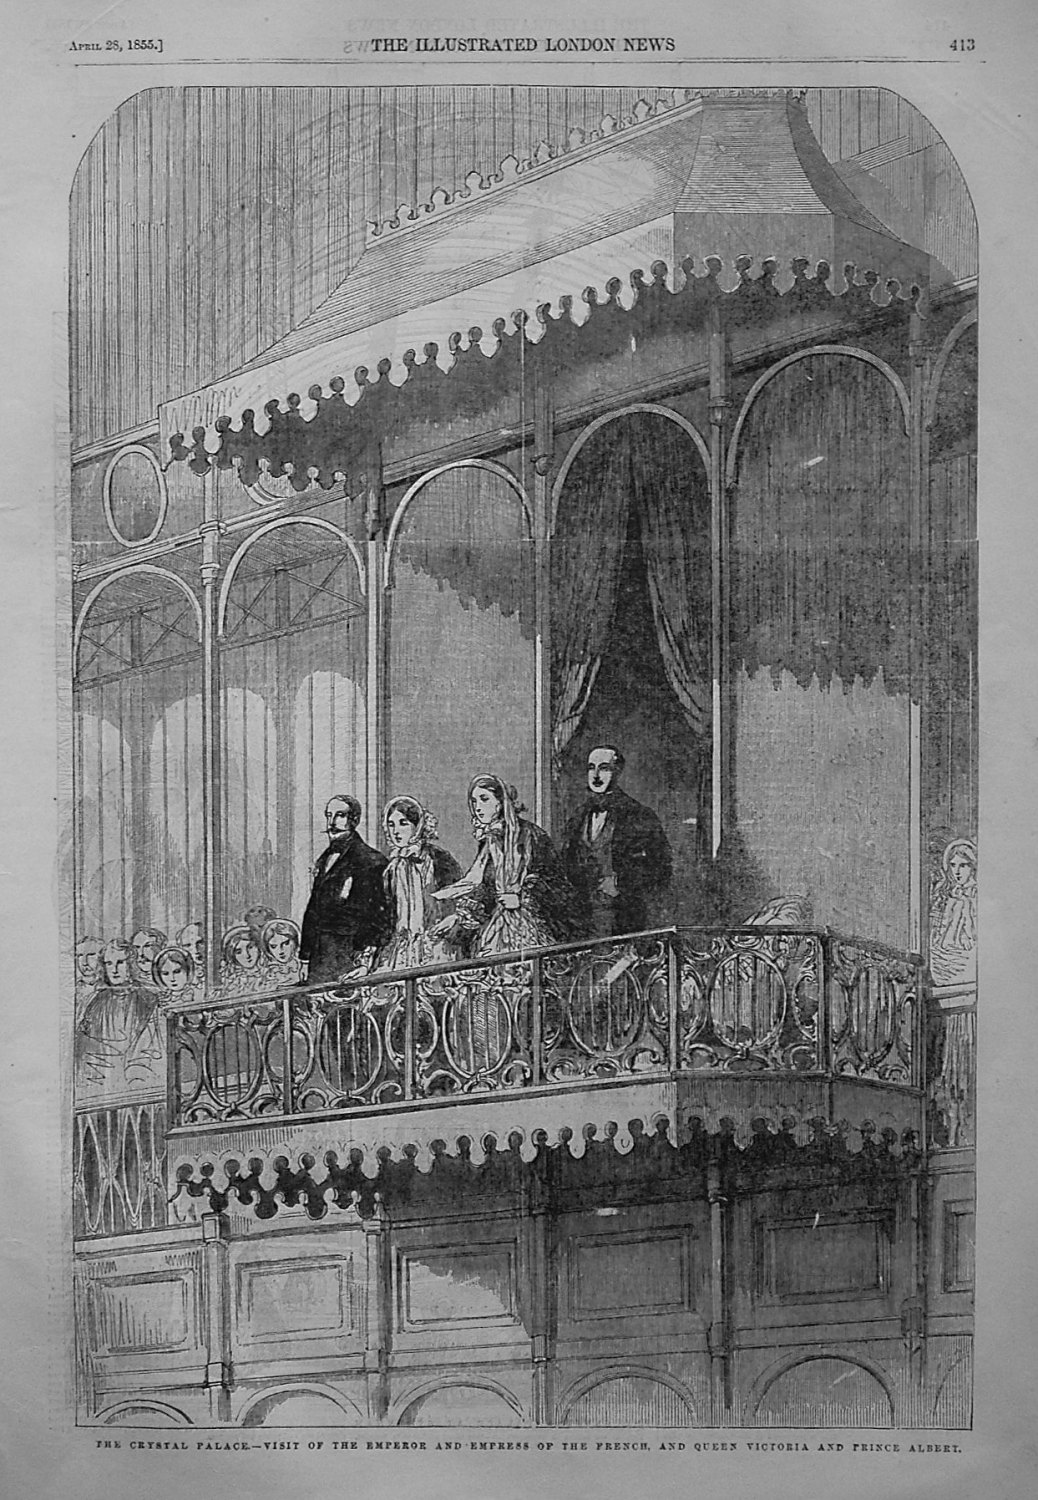 The Crystal Palace.- Visit of the Emperor and Empress of the French, and Qu